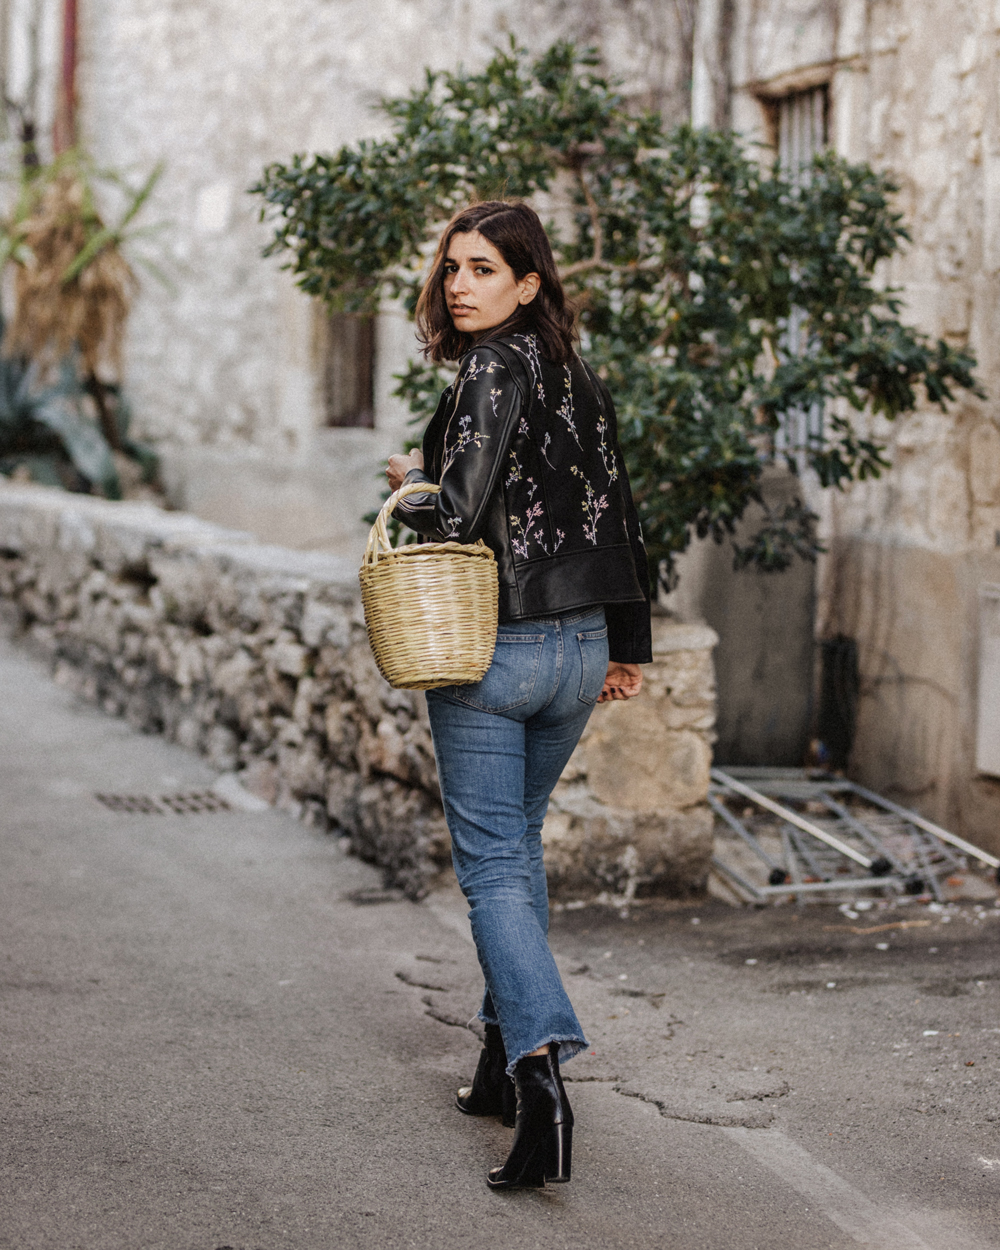 embroidered-leather-jacket-wicker-basket-zapa-birkin-basket-bag-mango-aria-di-bari-french-street-style-fashion-blogger-italian-zara-fall-outfit-2